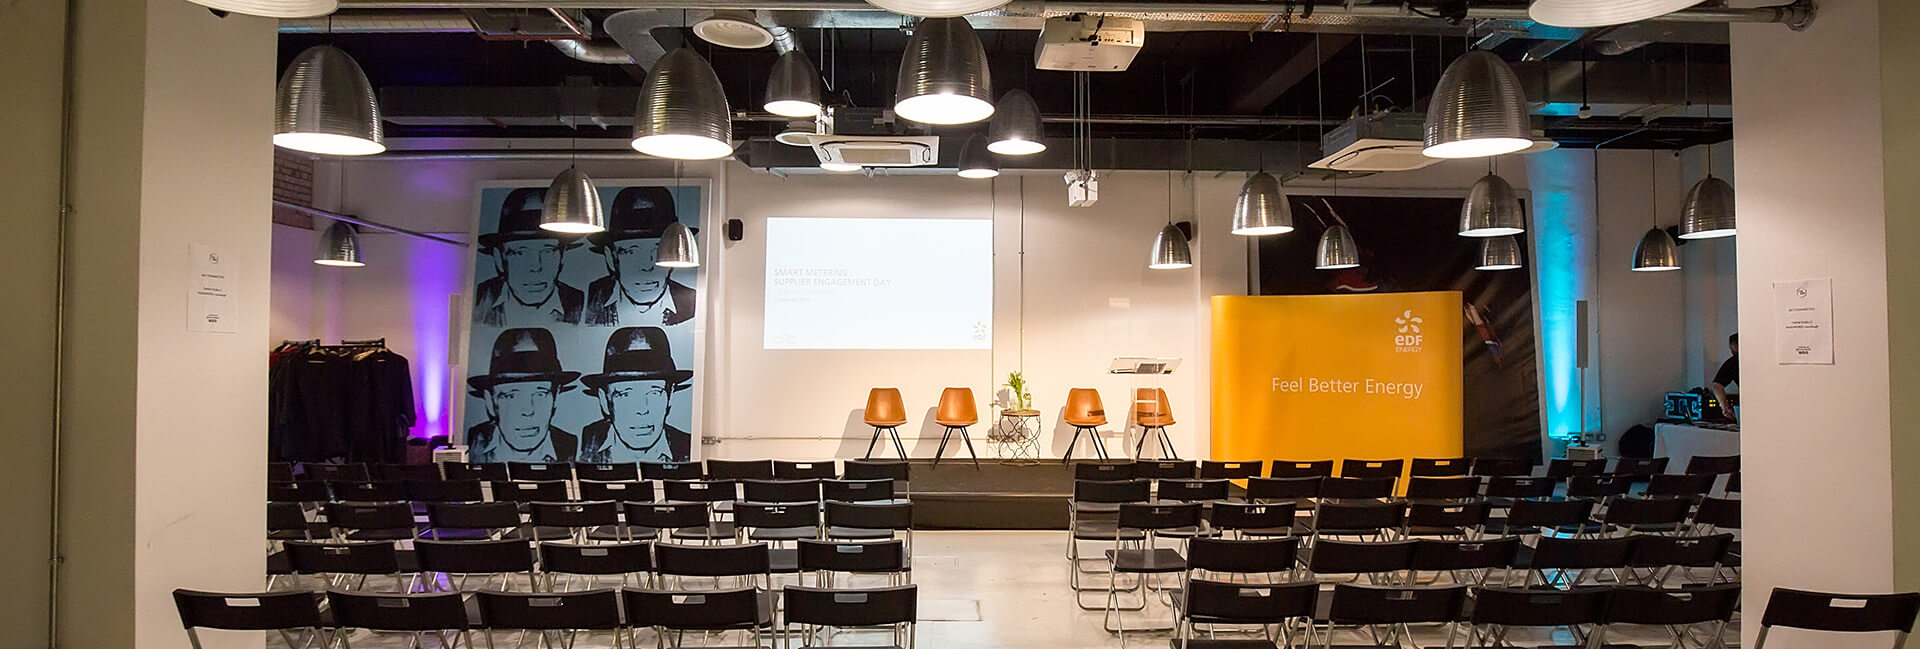 event space in croydon